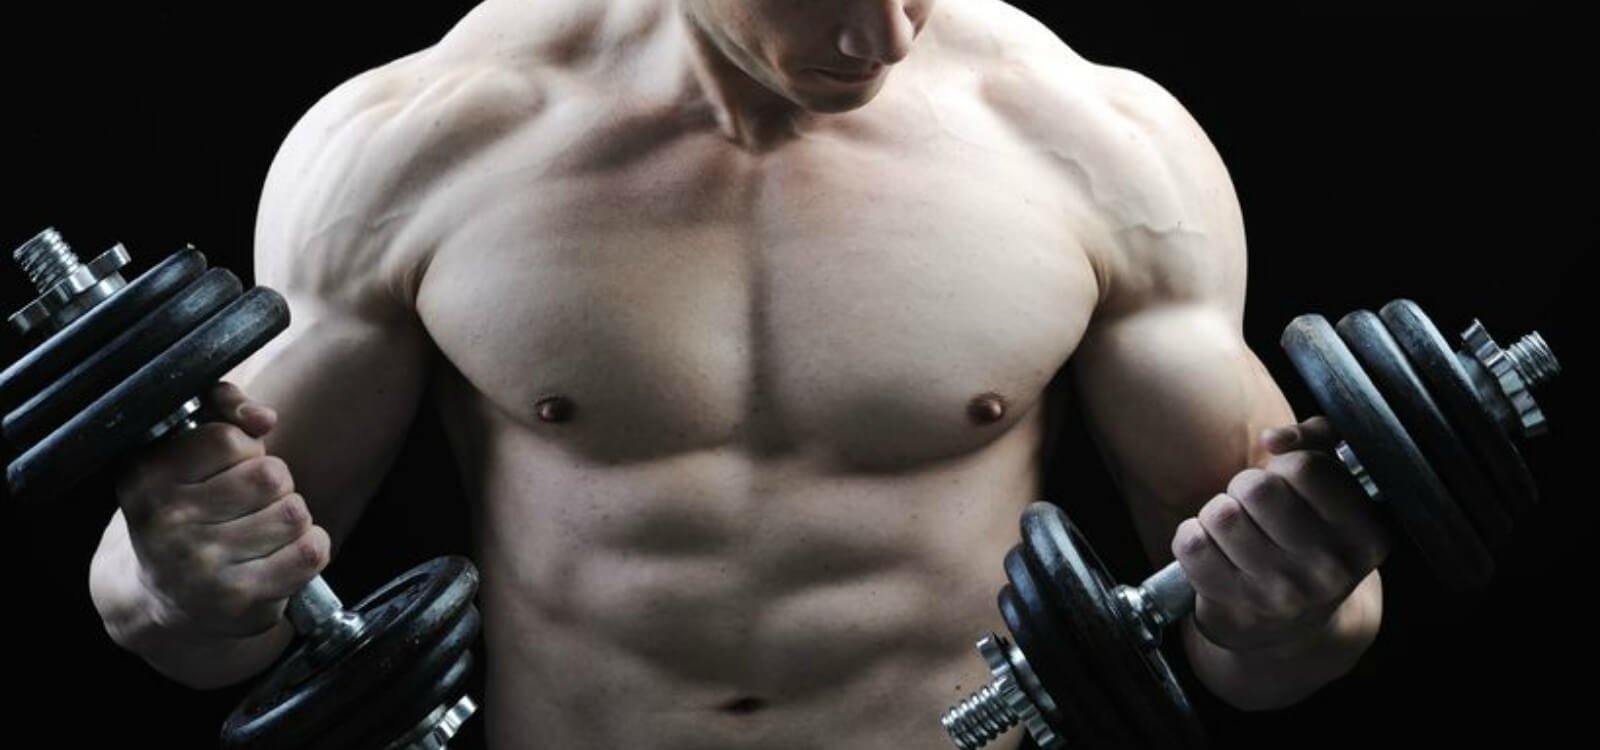 muscle fiber types and training